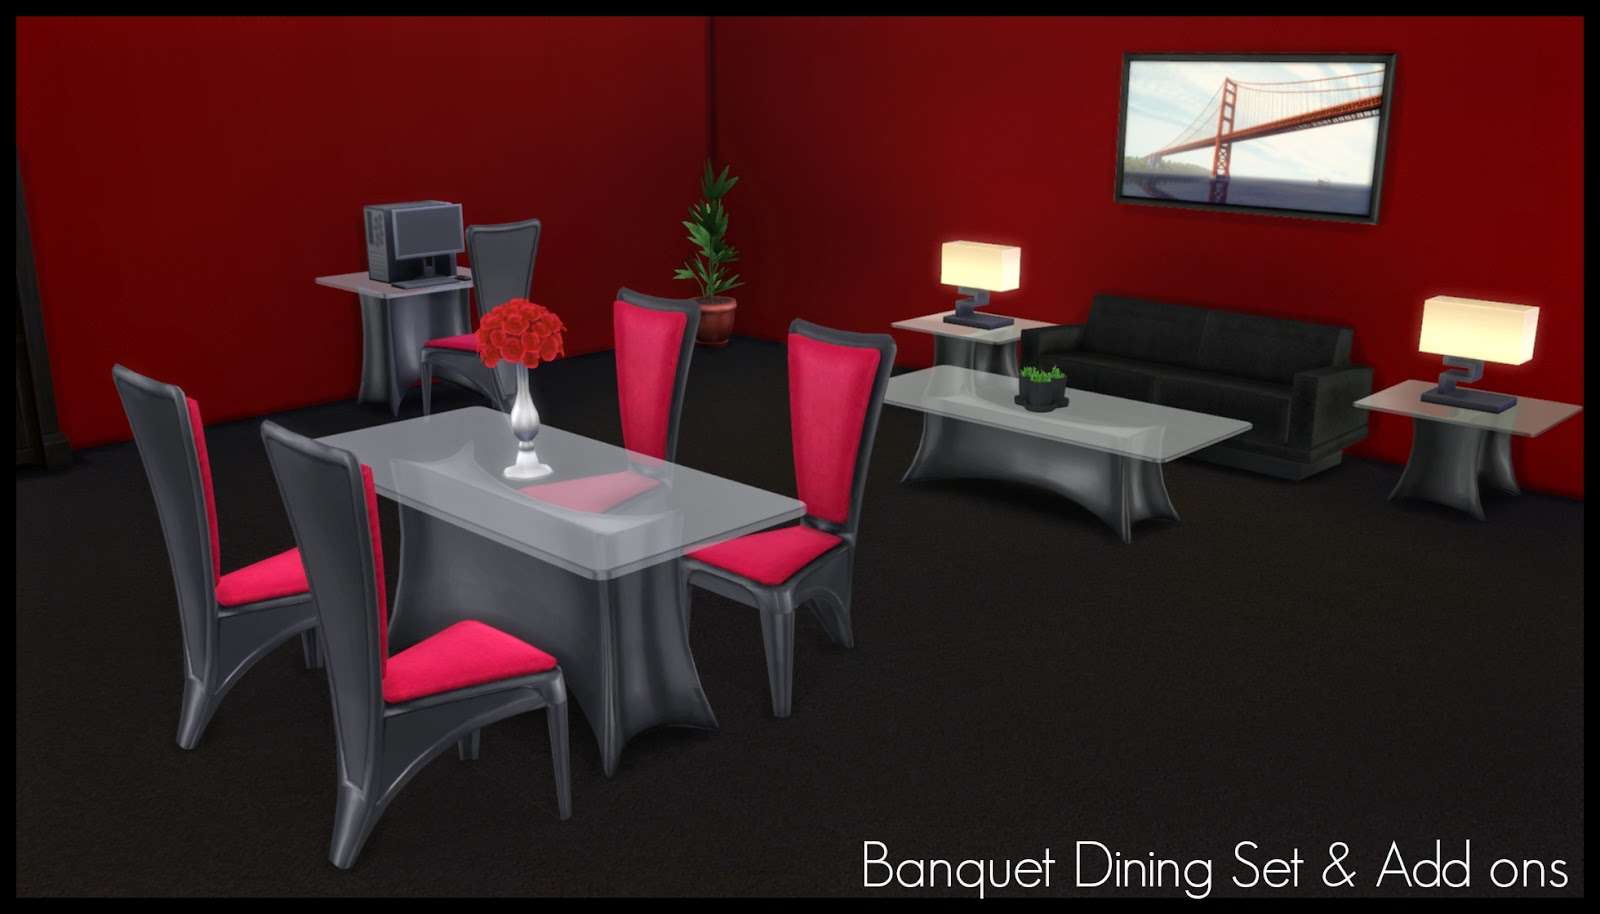 TS2 to TS4 - Banquet Dining Set & Add Ons by Elias943